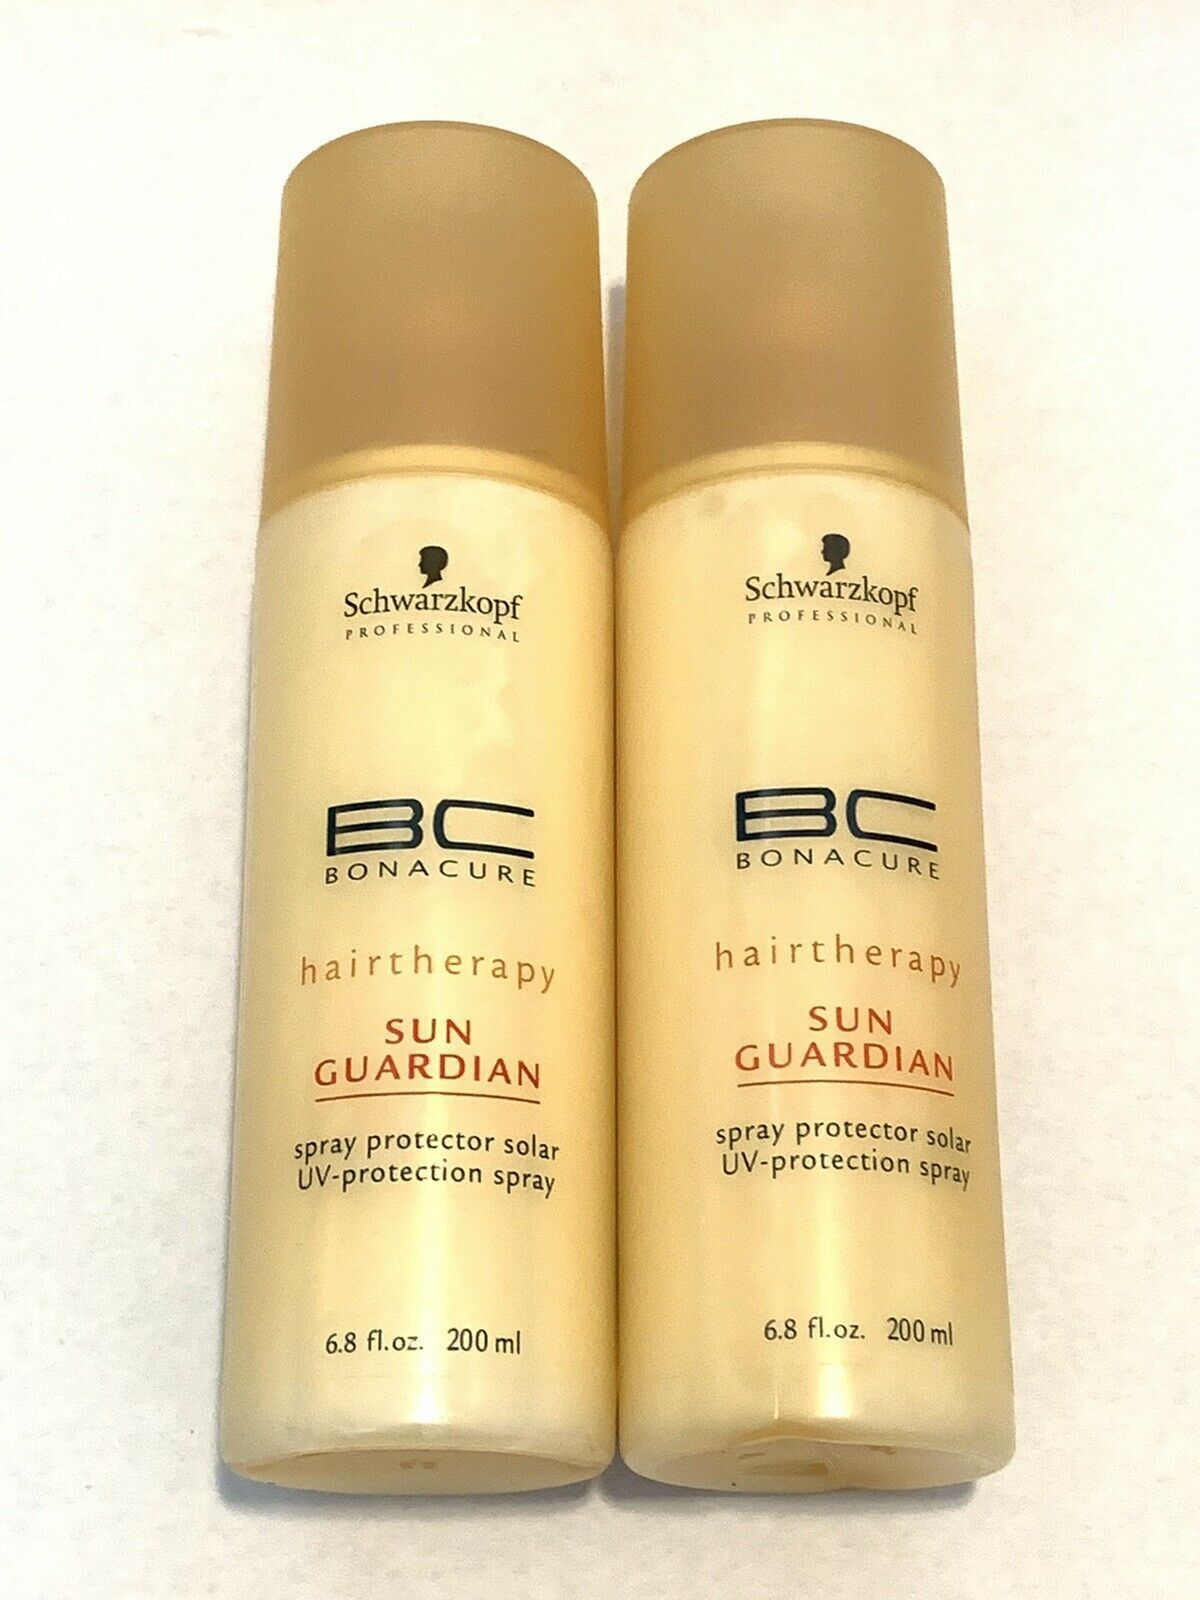 Primary image for 2 SCHWARZKOPF SUN GUARDIAN UV-PROTECTION SPRAY FOR HAIR 13.6 FL OZ TOTAL - NEW